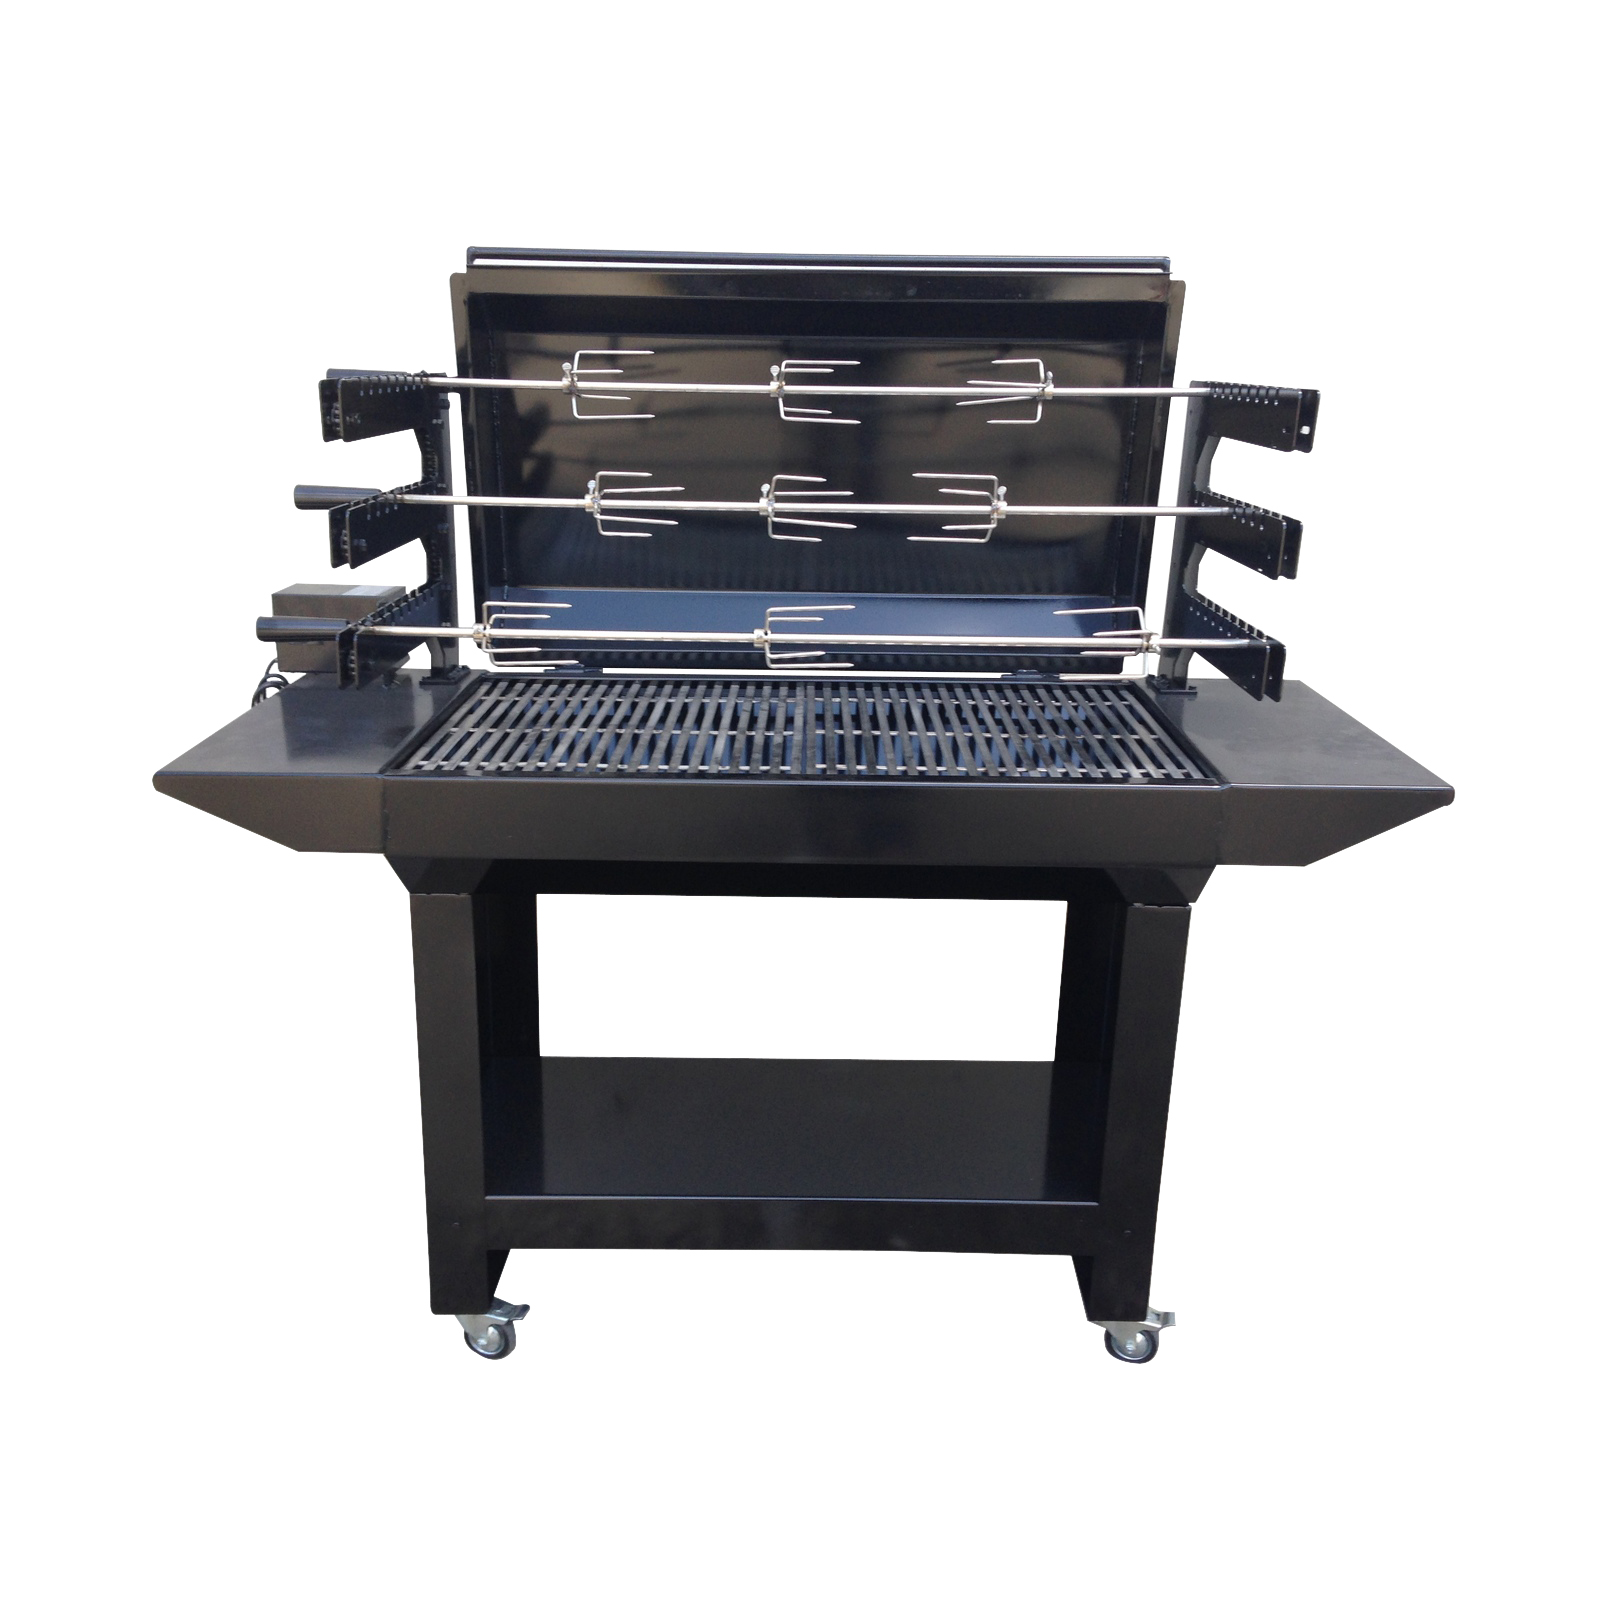 Charcoal For Bbq Australian Made 3 Tier Chain Driven Rotisserie Charcoal